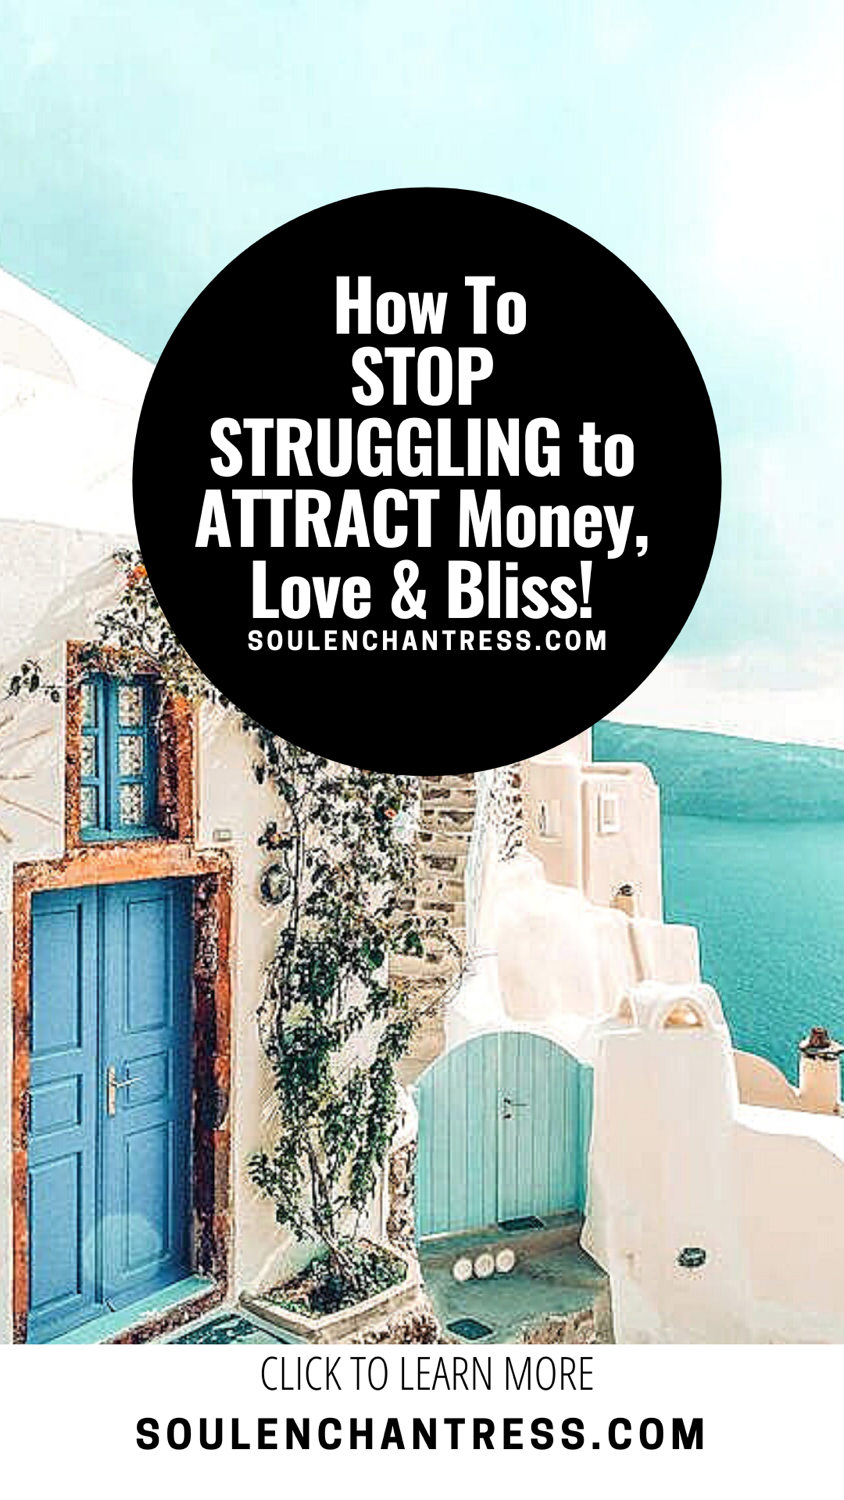 how to attract money, attract love, attract peace of mind, soul enchantress